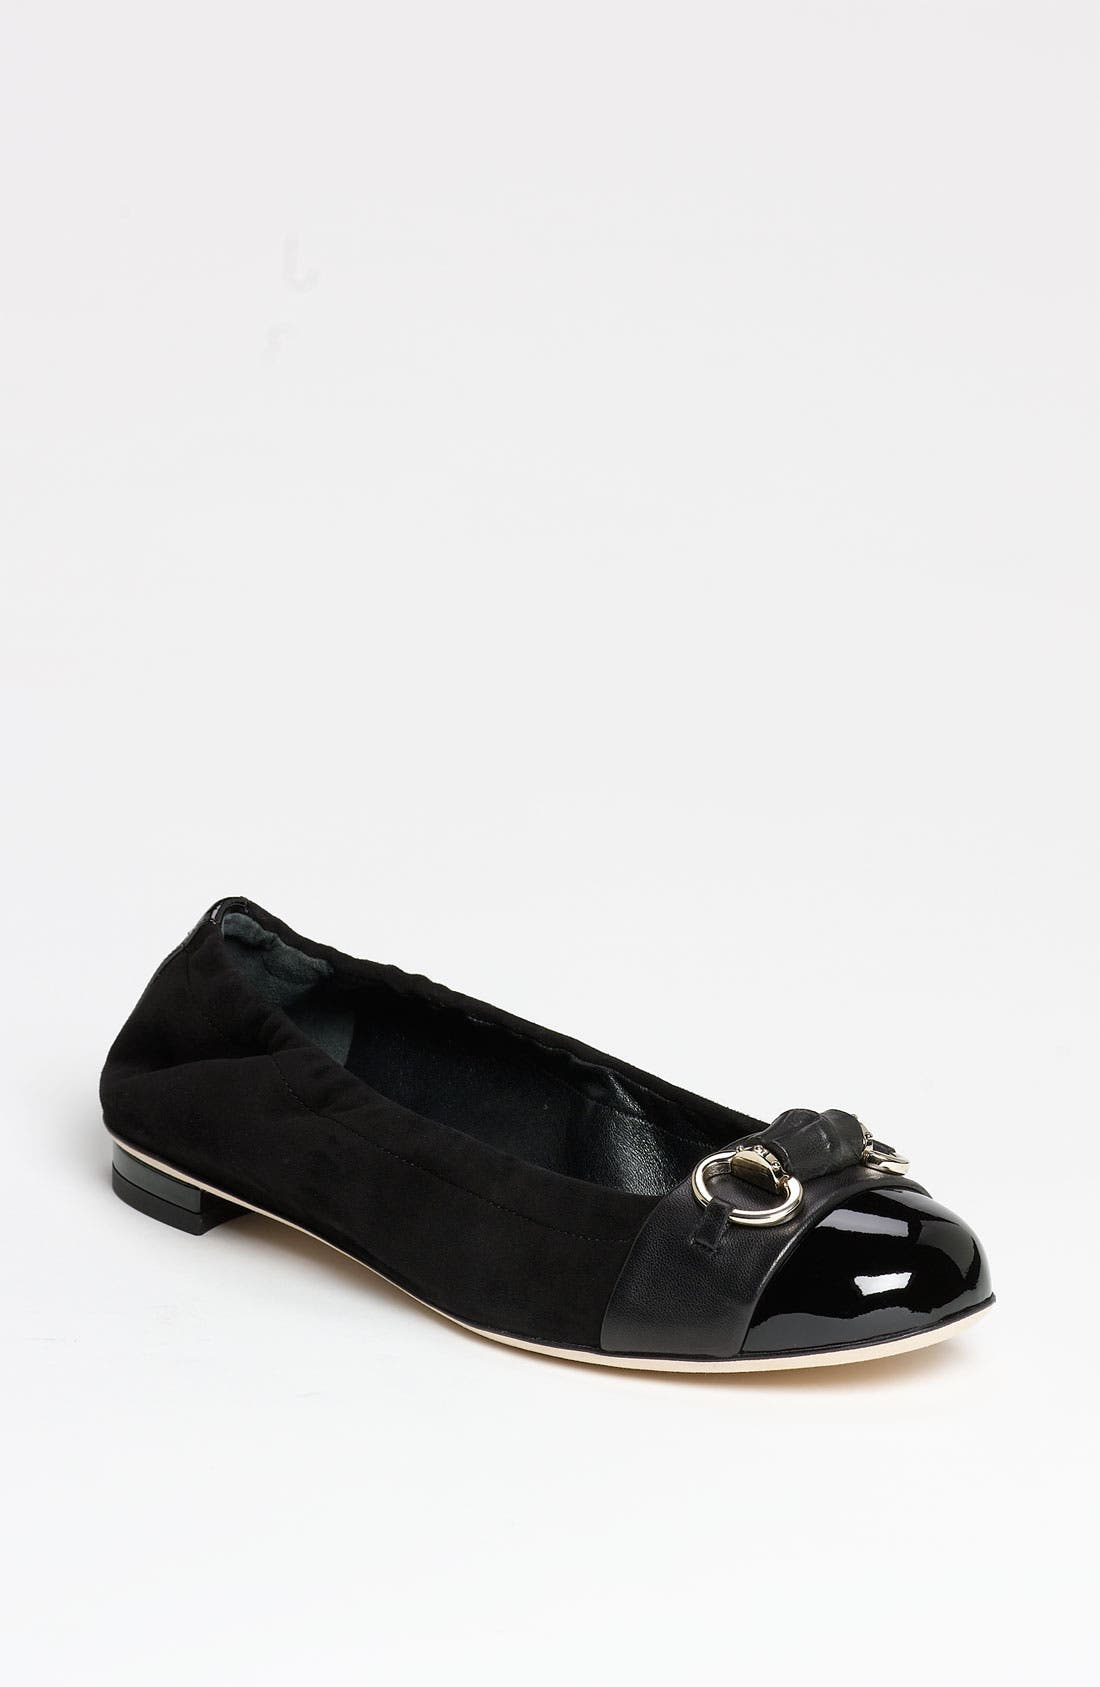 Alternate Image 1 Selected - Gucci 'Bamboo Bit' Ballet Flat